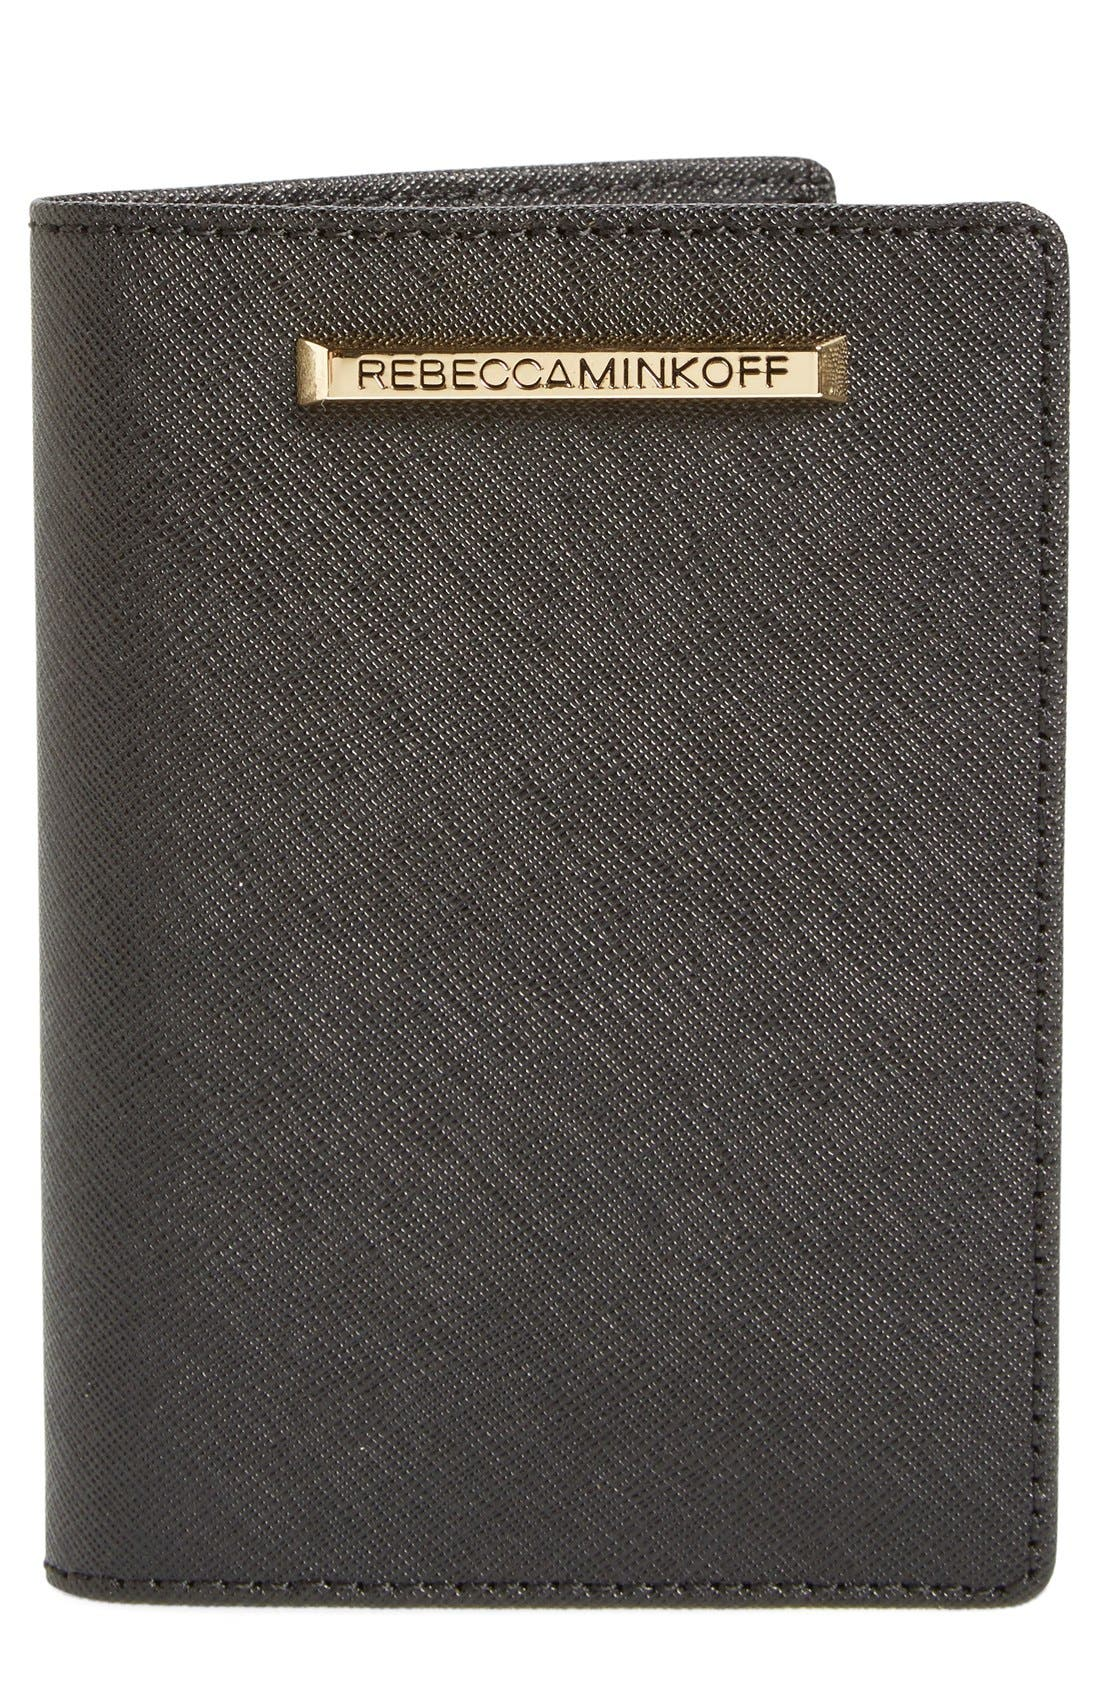 Main Image - Rebecca Minkoff Passport Holder